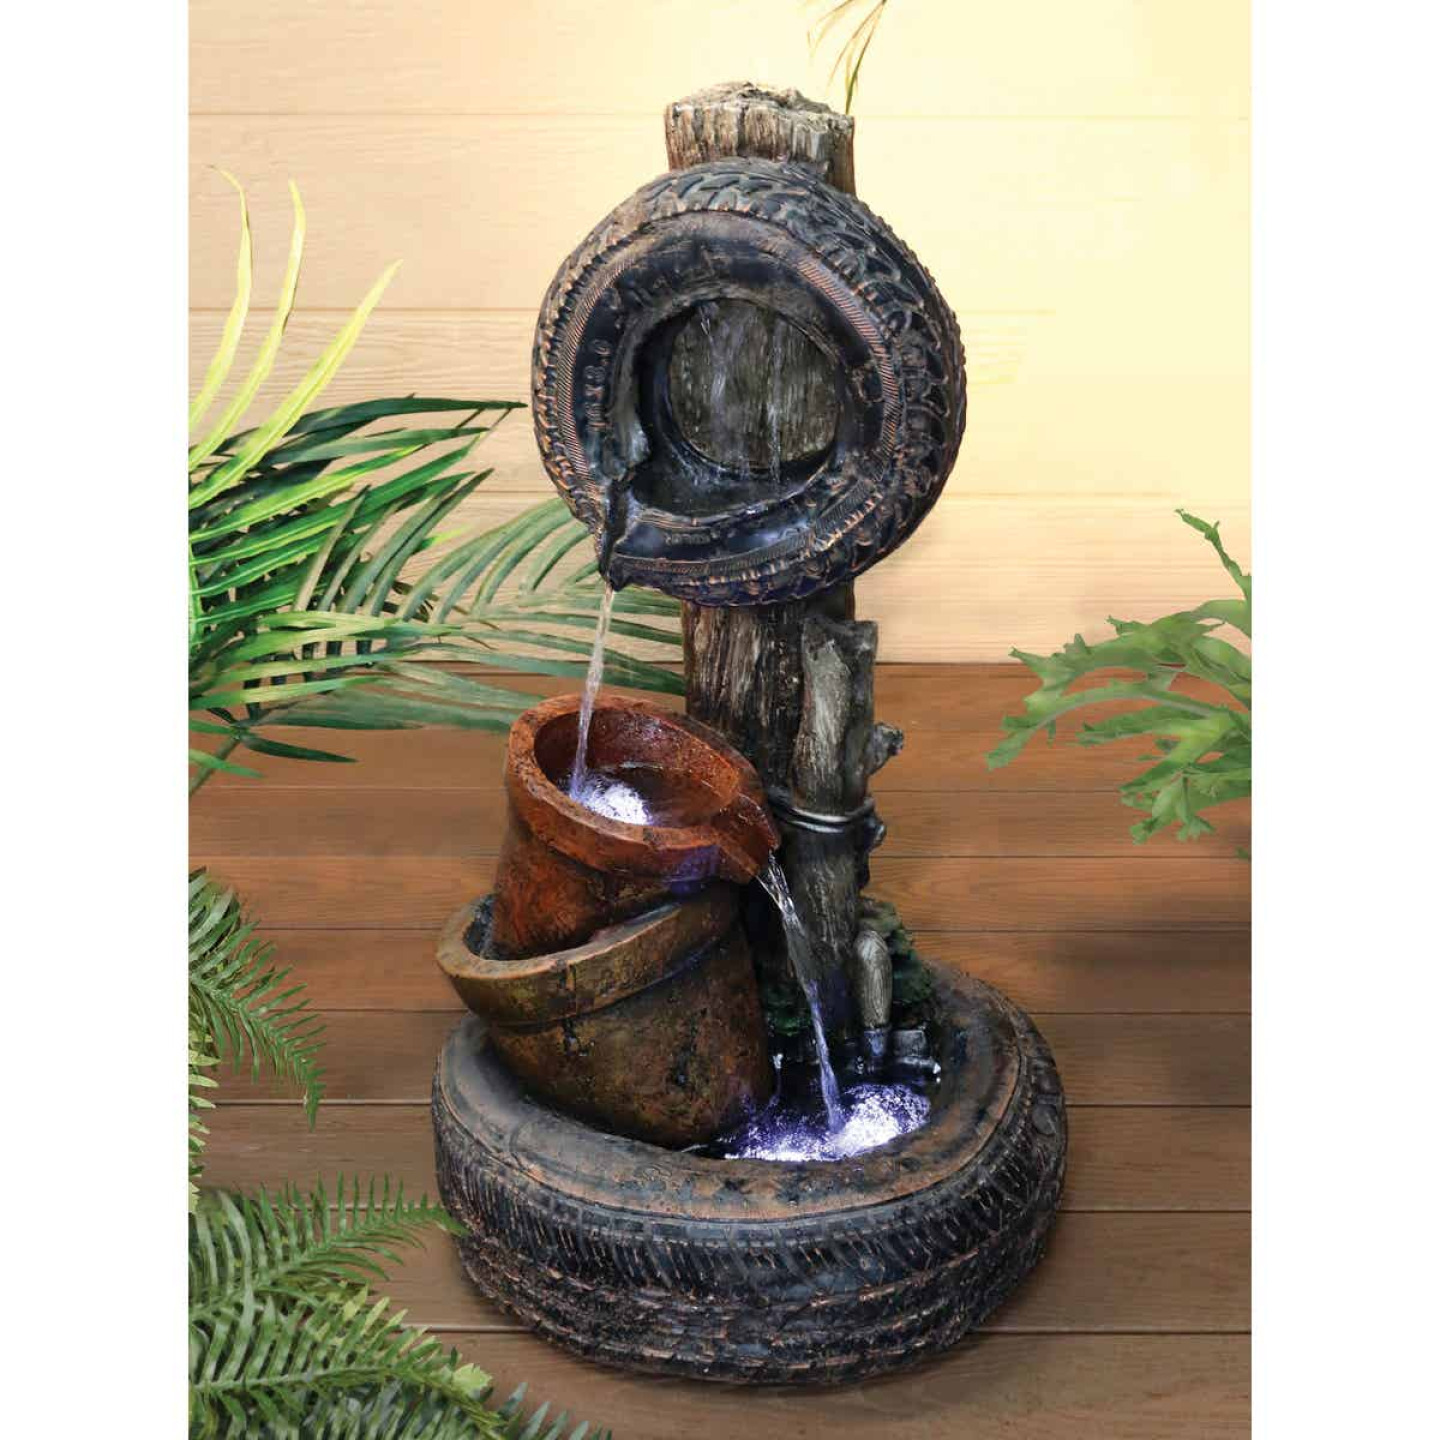 Alpine 15 In. W. x 32 In. H. x 18 In. L. Polyresin Tire & Buckets Fountain Image 2